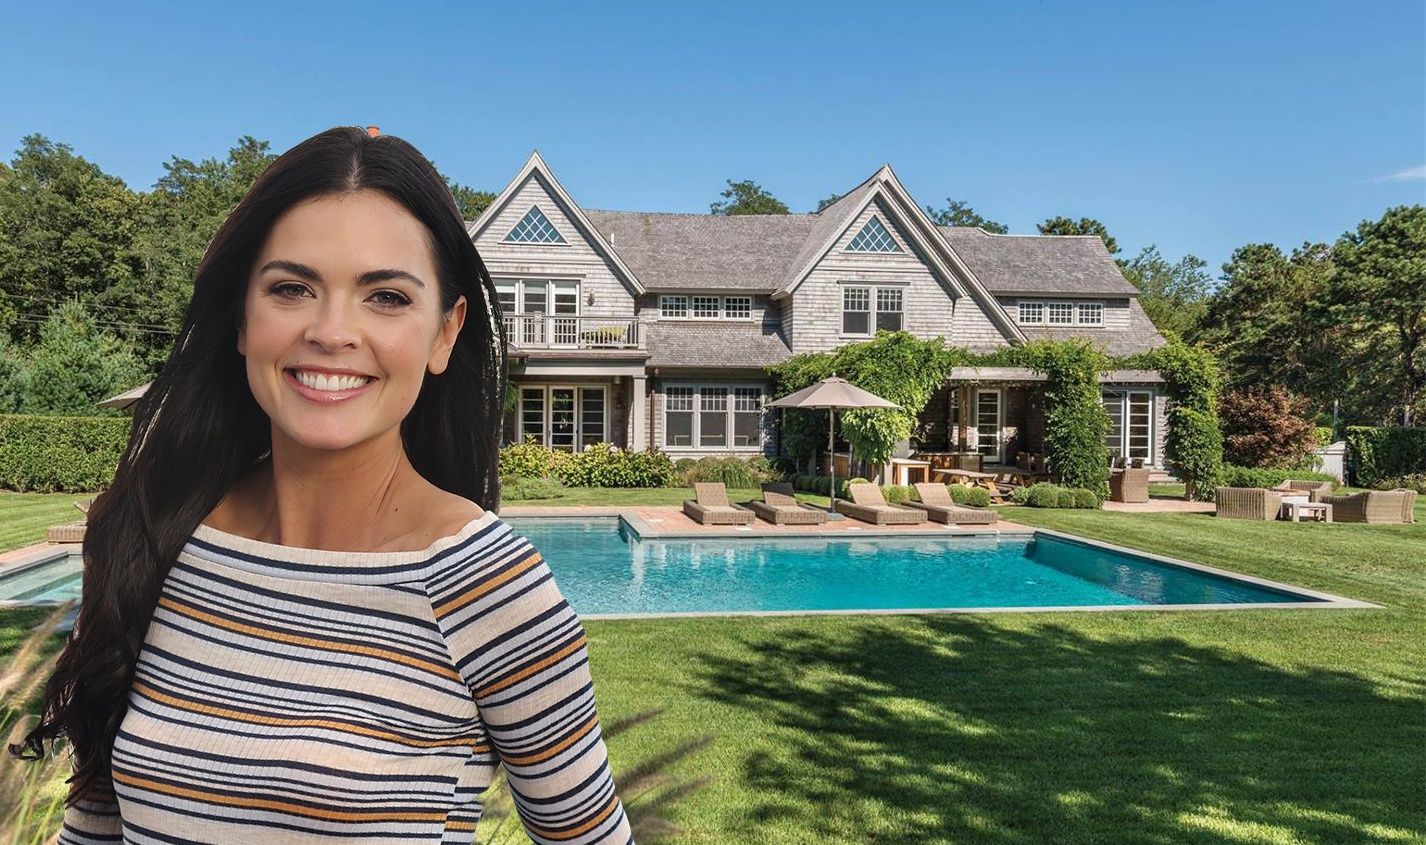 Food network darling katie lee selling decked out hamptons estate view photo in gallery thecheapjerseys Image collections